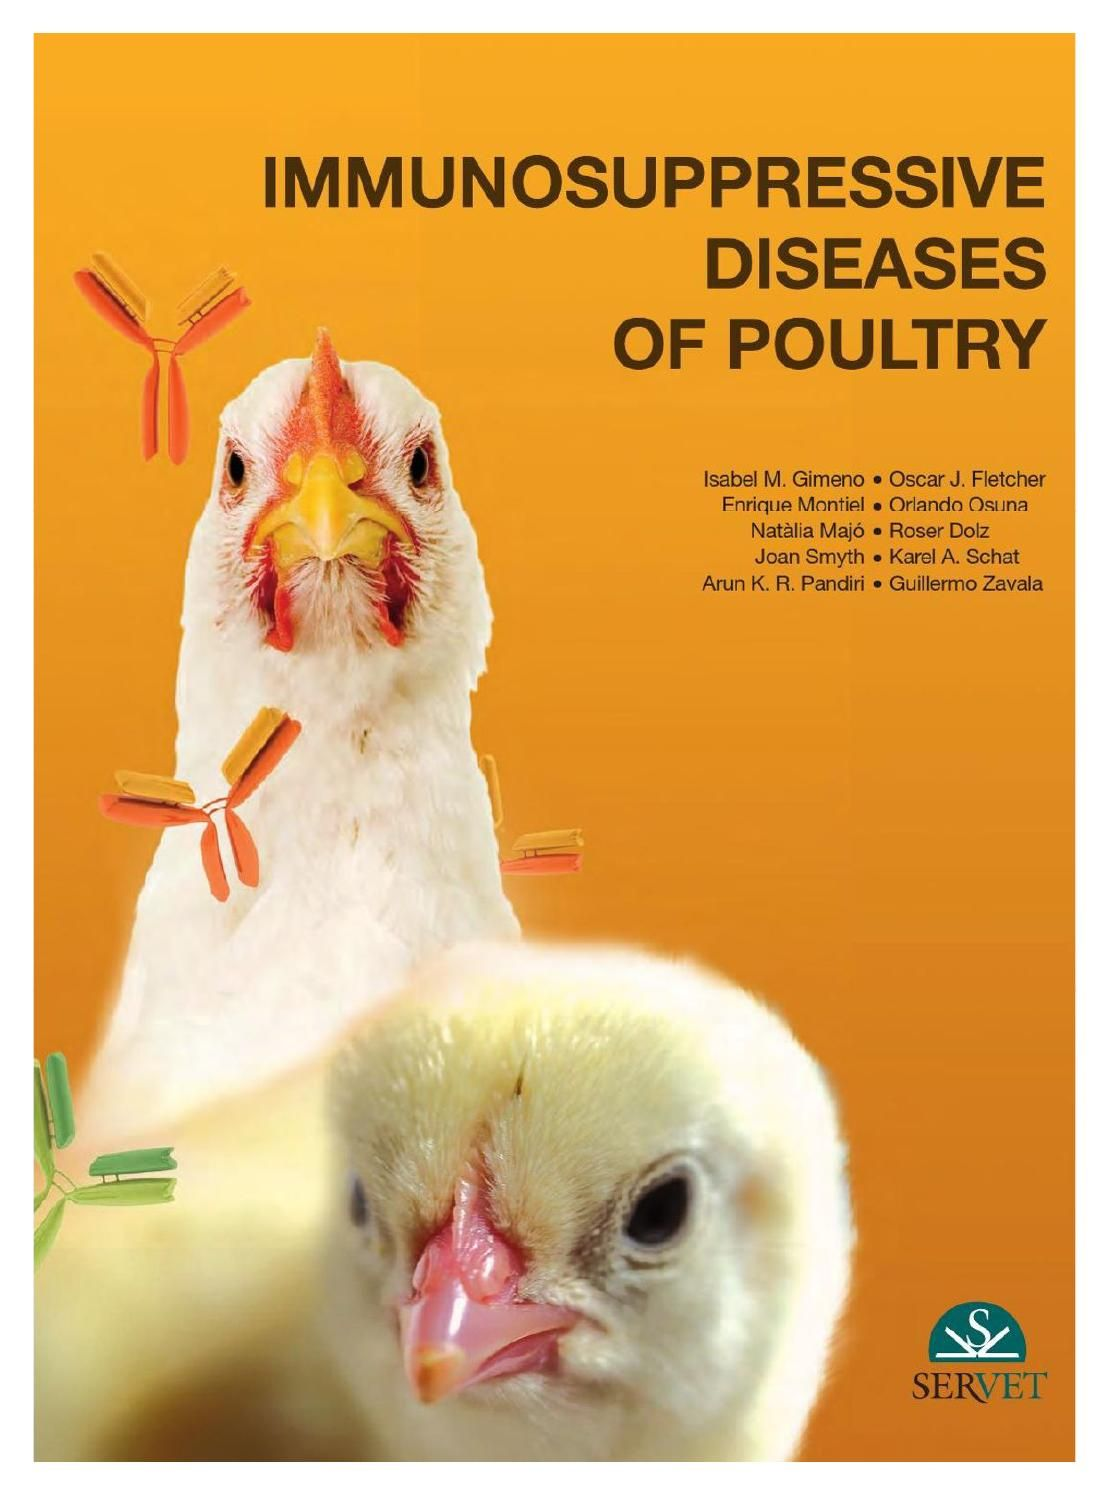 Immunosuppressive diseases of poultry Poultry, Animals